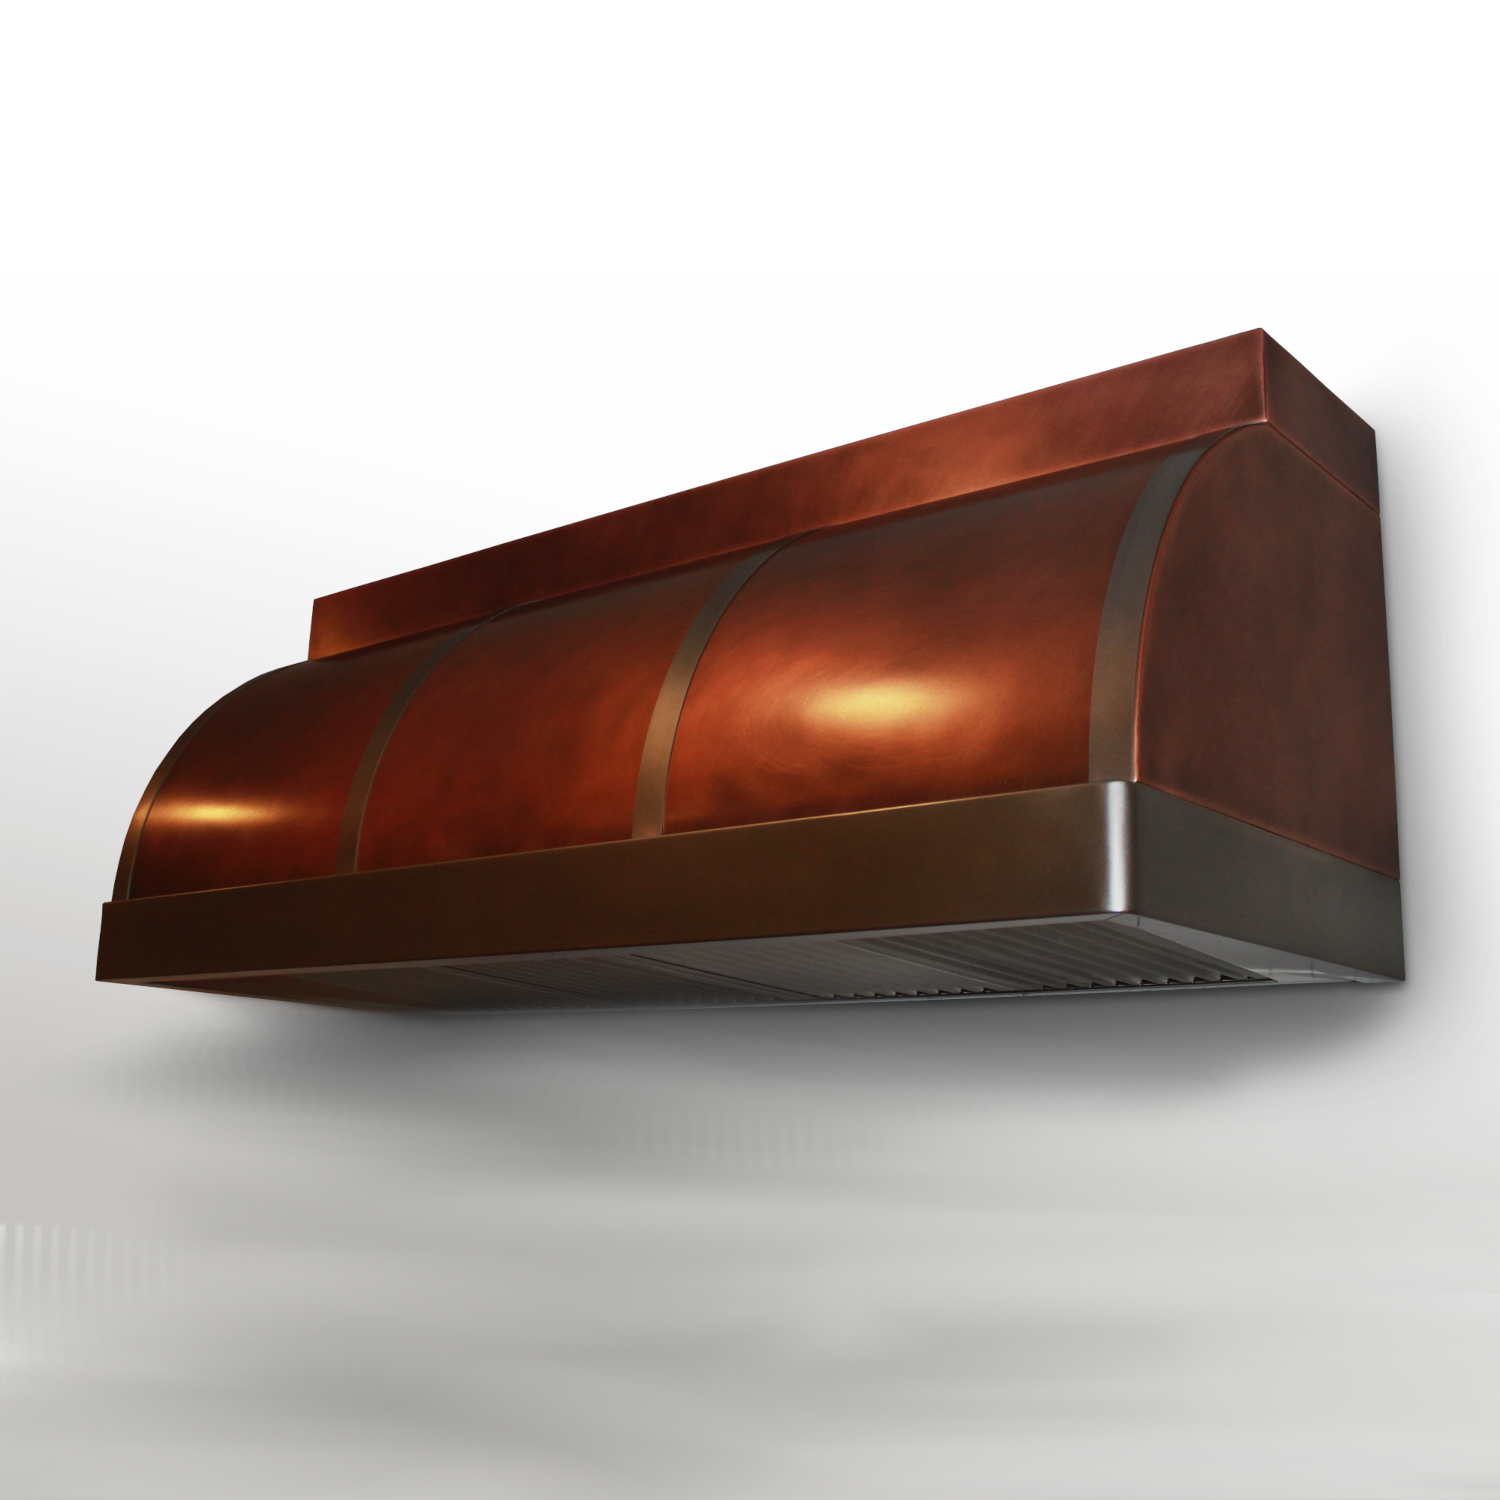 Wall mounted Canopy in antique copper with antique stainless steel bands and trim.